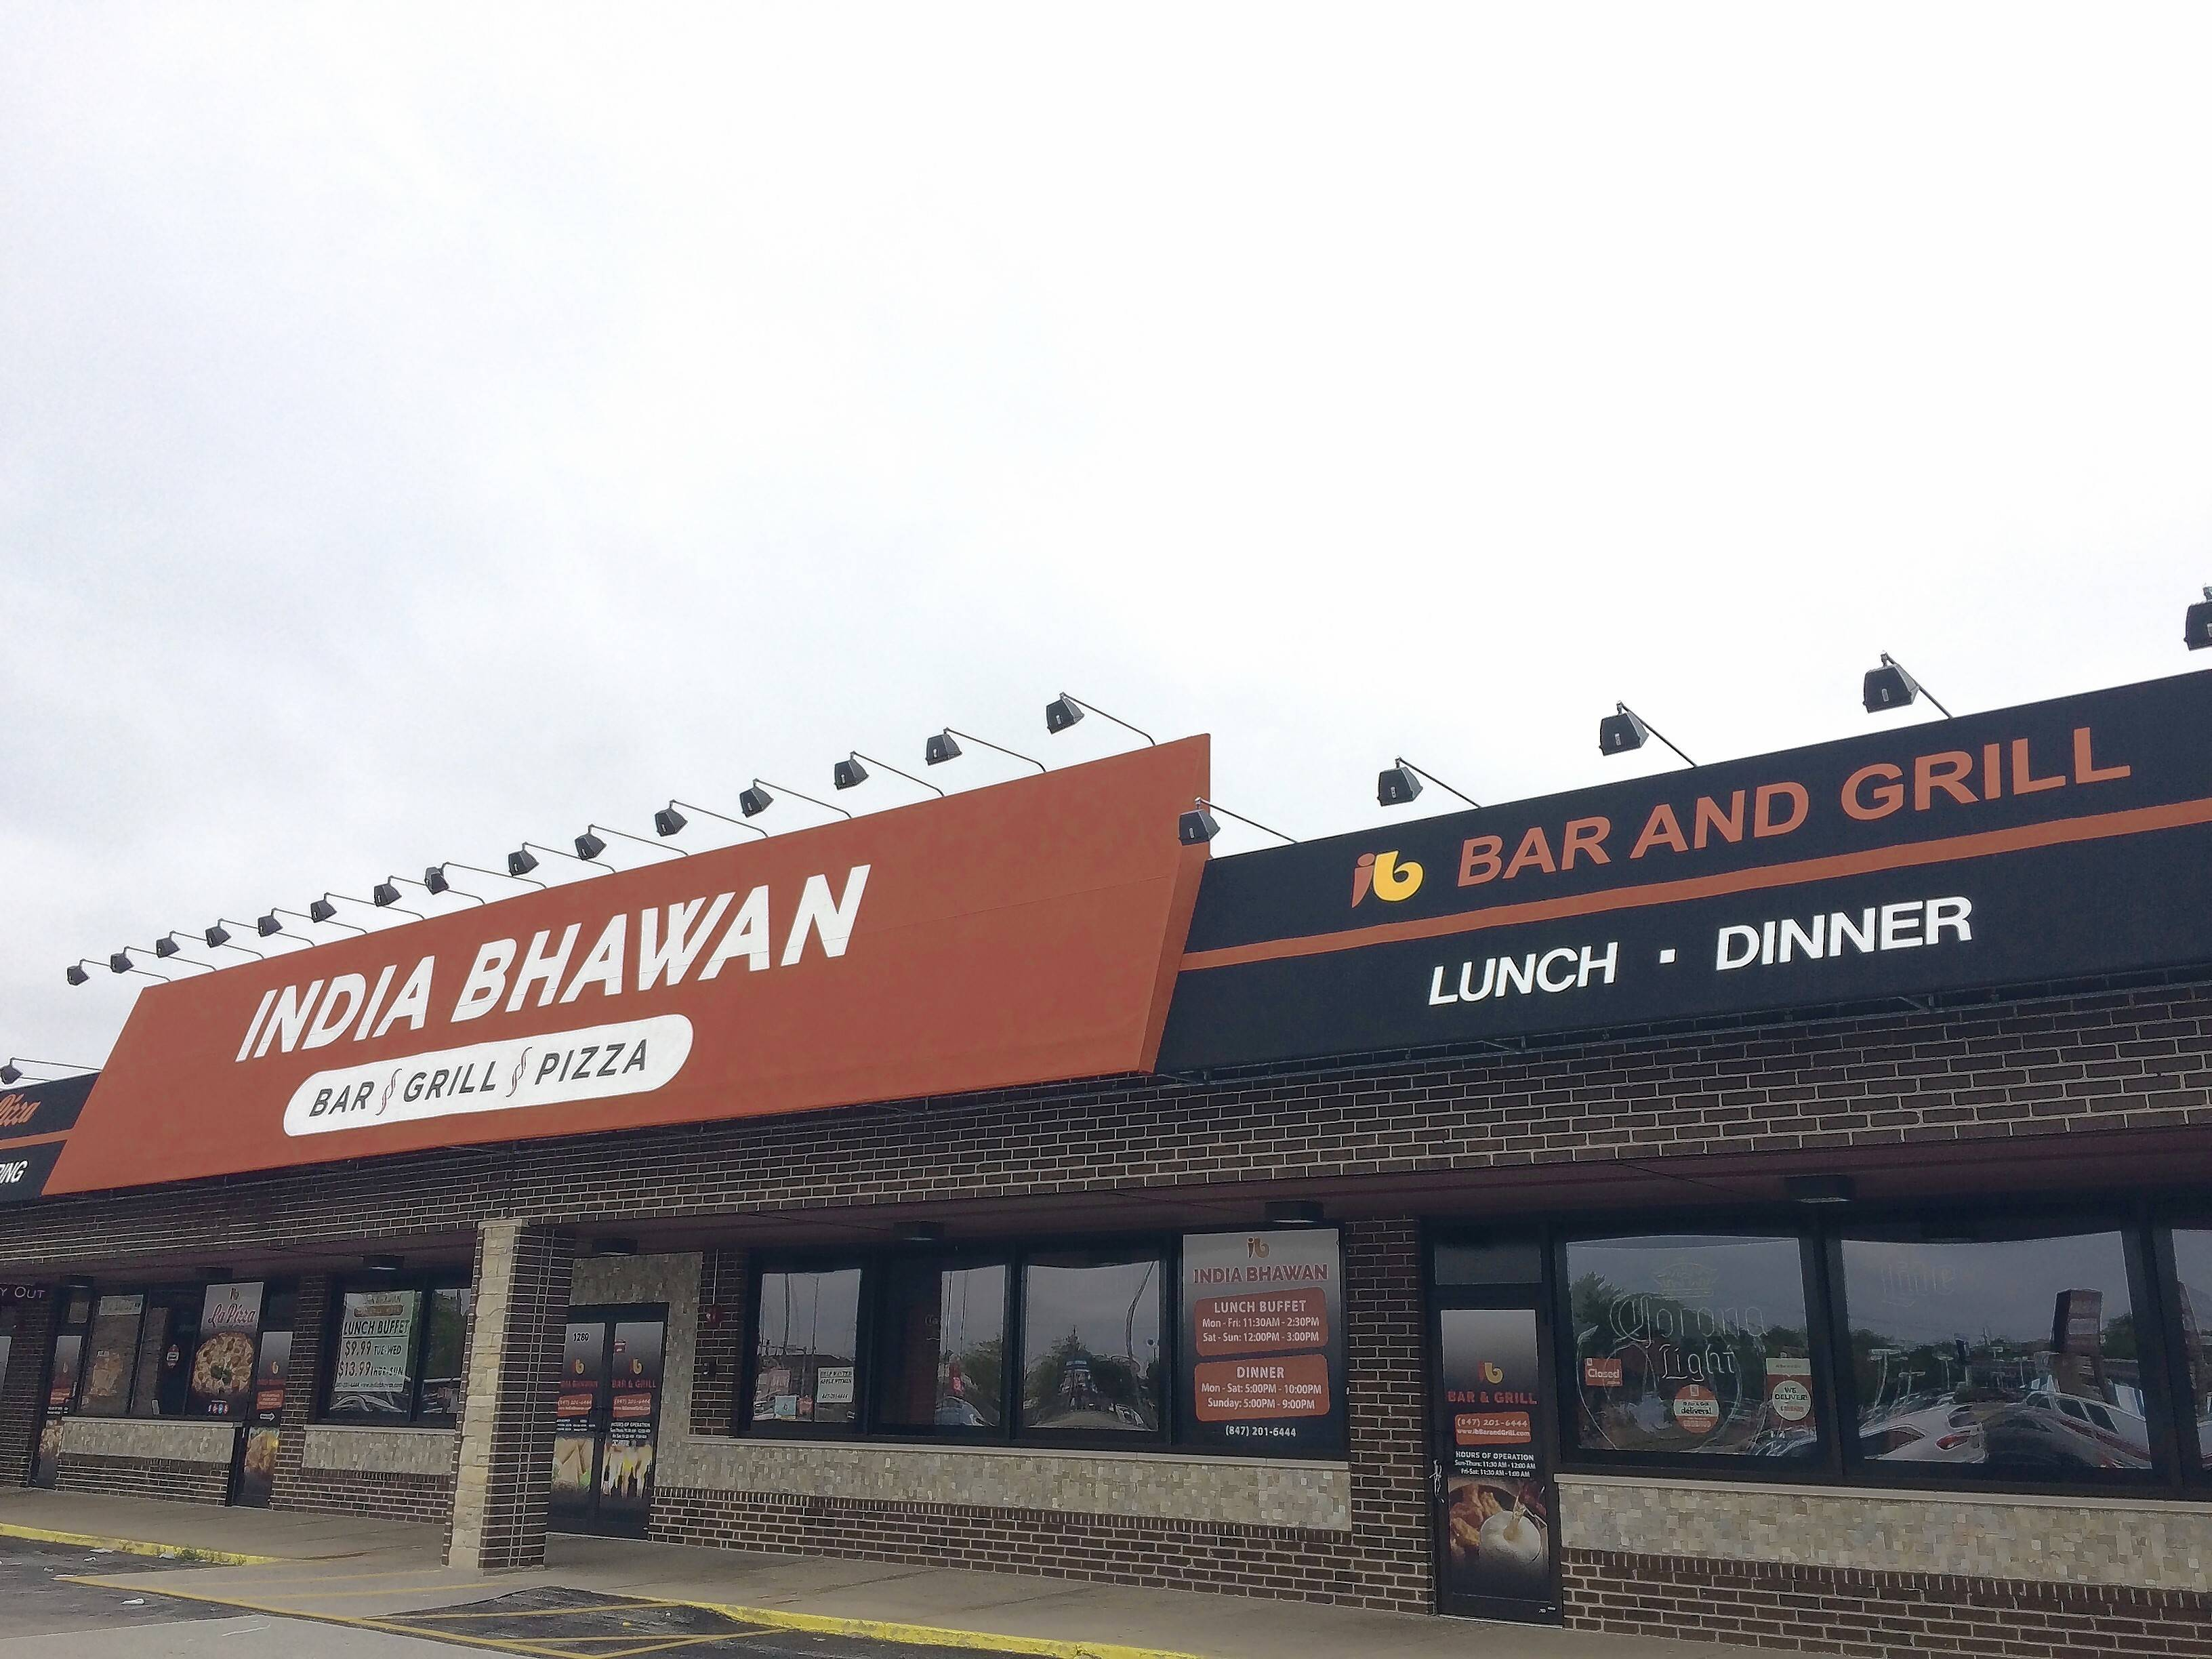 The India Bhawan restaurant in Palatine has been allowed to temporarily reopen after submitting a plan to village government addressing alleged code violations including food safety.